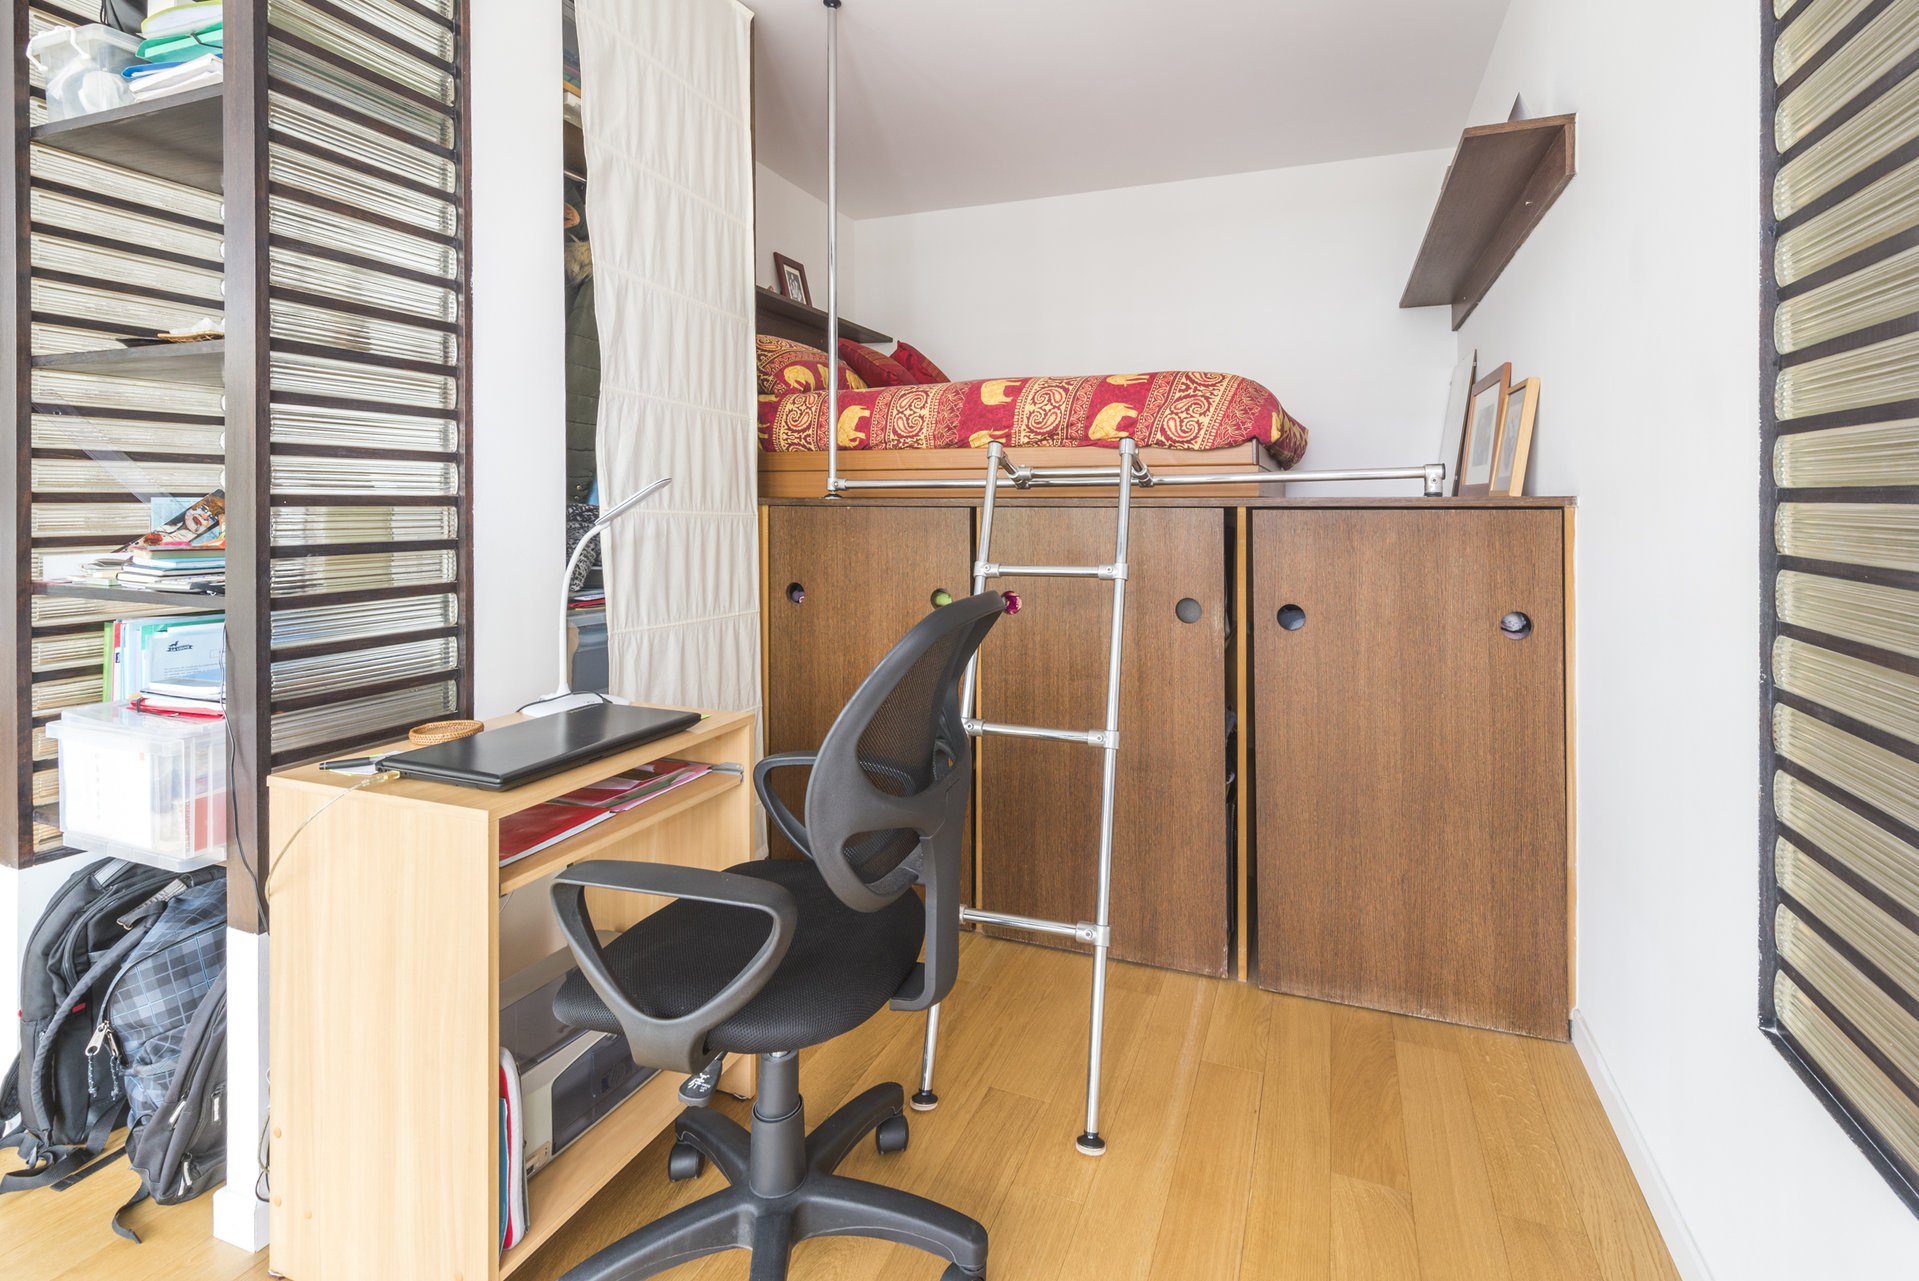 Vente Appartement - Paris 13ème Gare